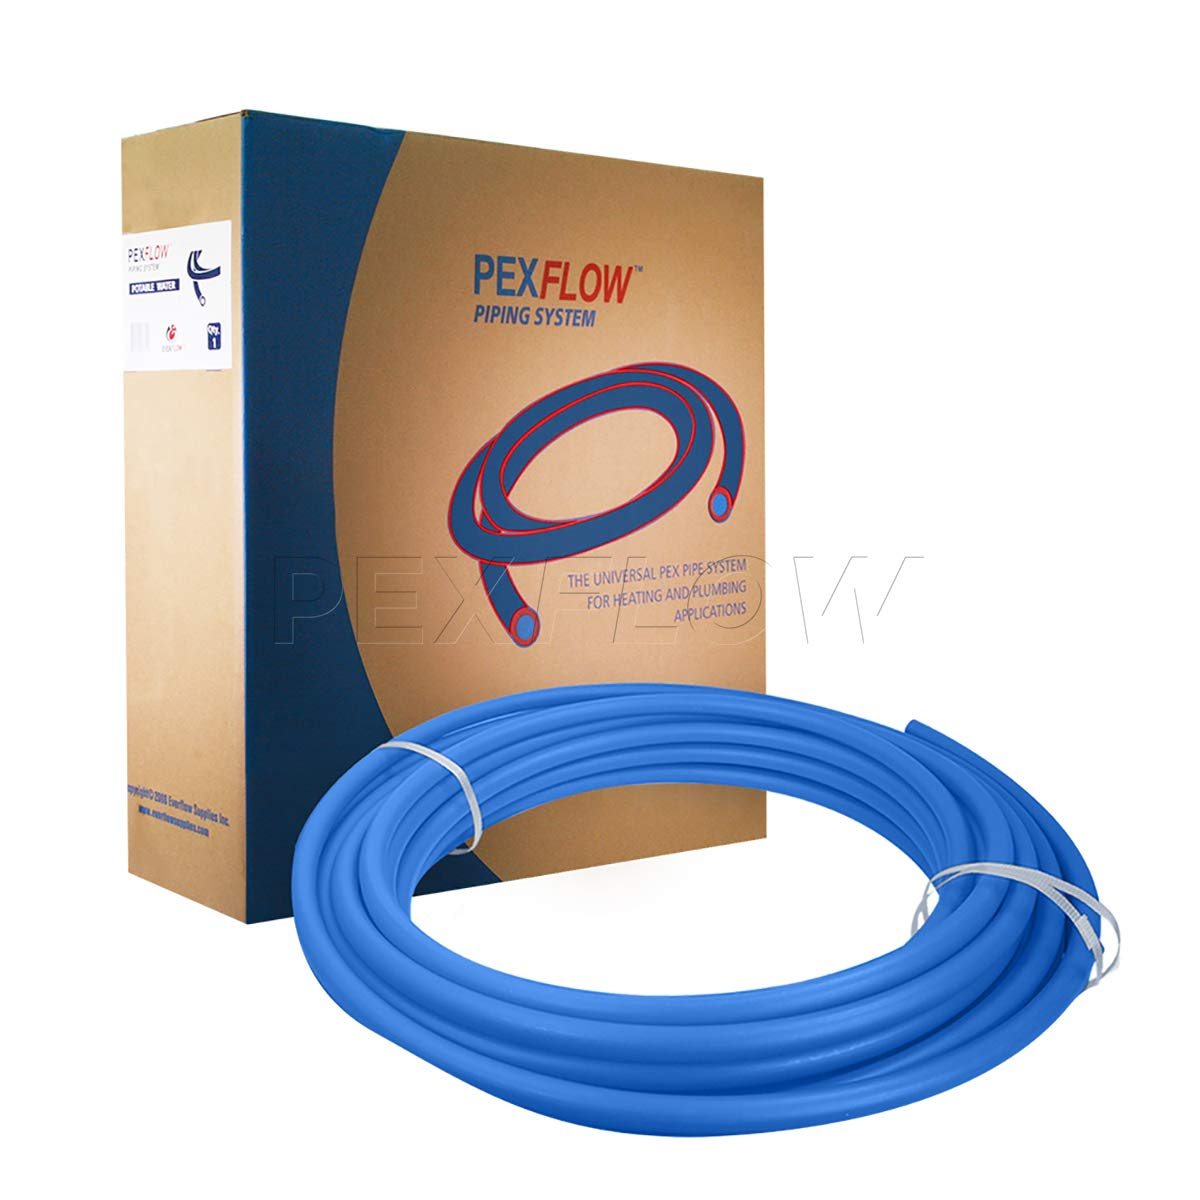 Pexflow PFW-B1100 PEX Potable Water Tubing Non-Barrier Pipe, 1 Inch x 100 Feet, Blue by PEXFLOW (Image #2)